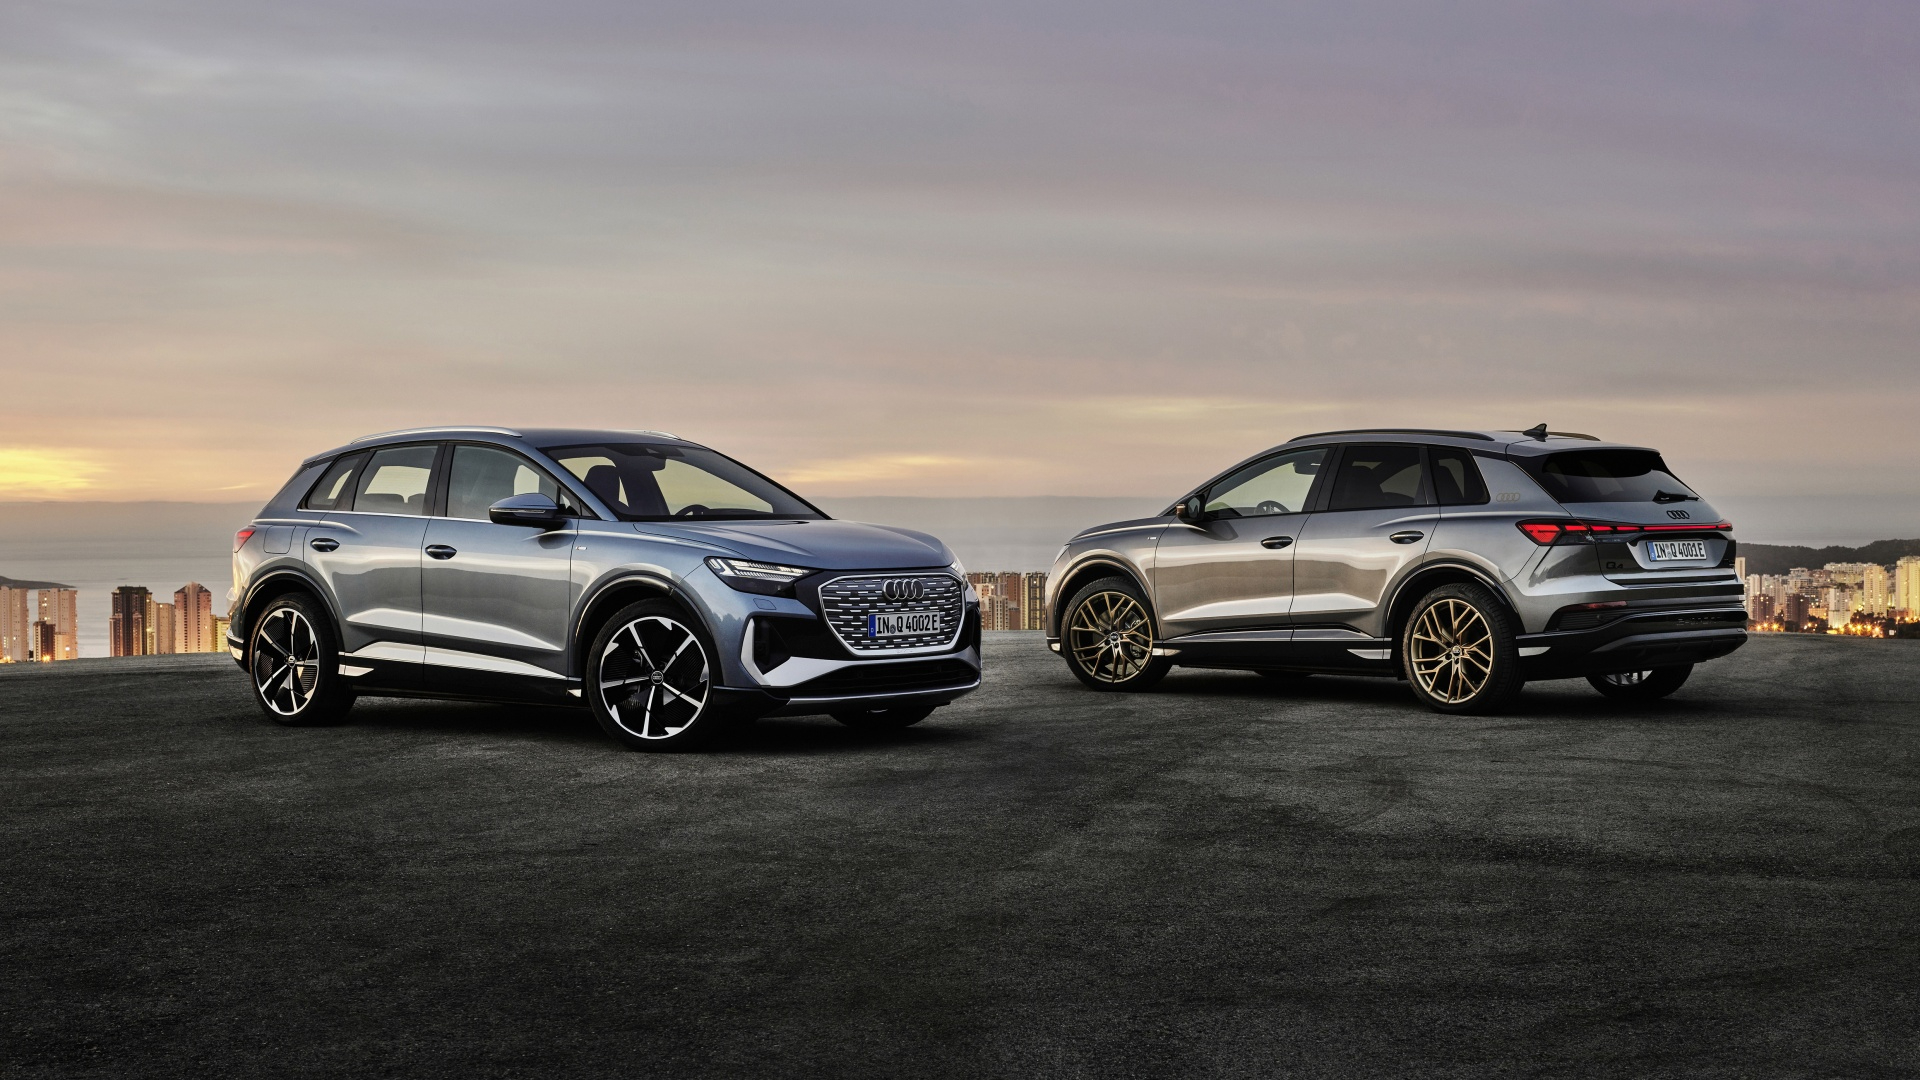 It's official! The first Sonos in-car sound system will feature in the Audi Q4 e-tron